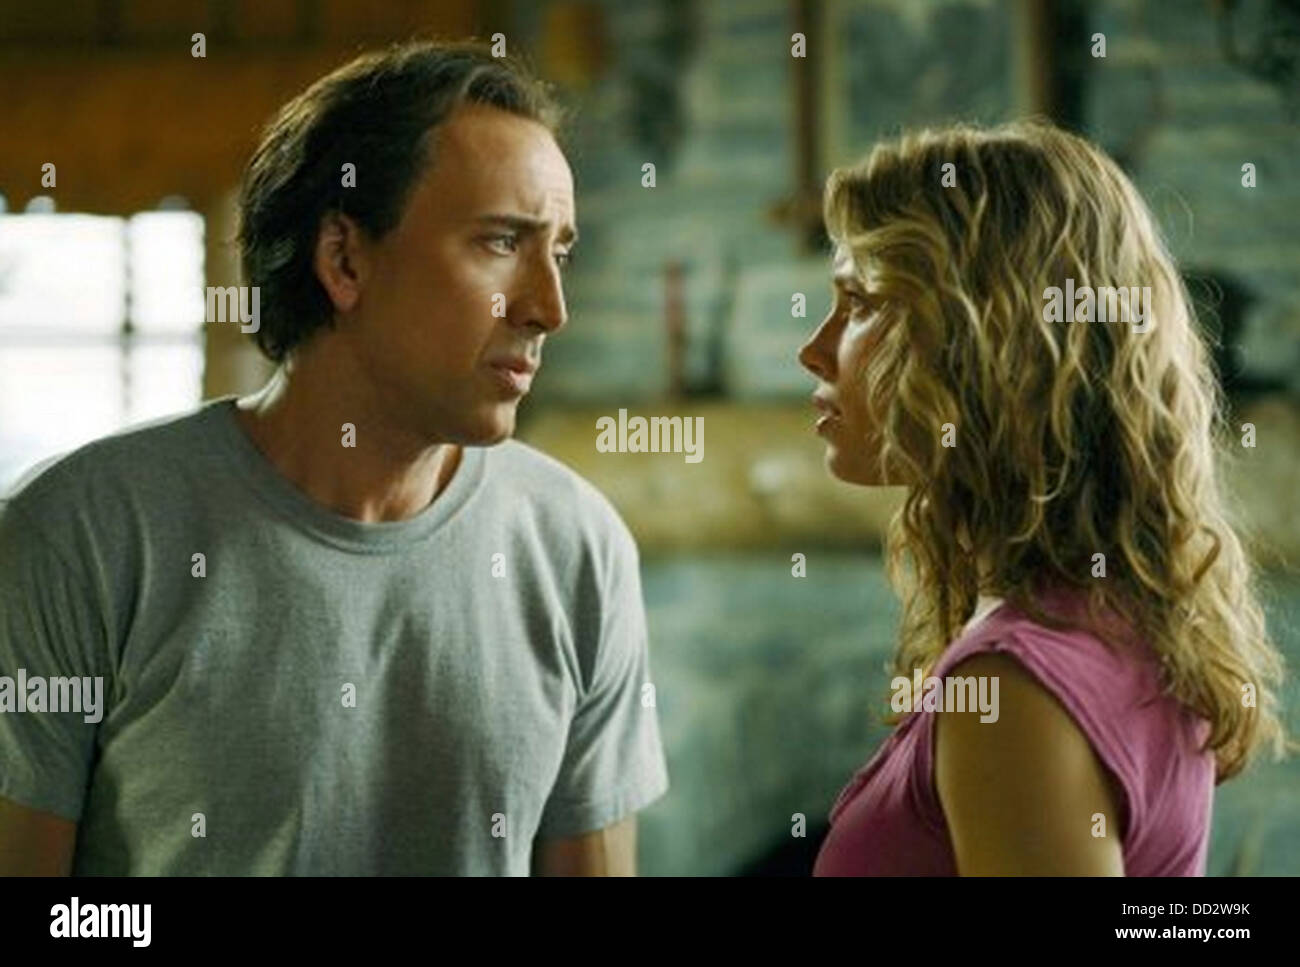 NEXT  2007 Paramount Pictures film with Jessica Biel and Nicolas Cage - Stock Image